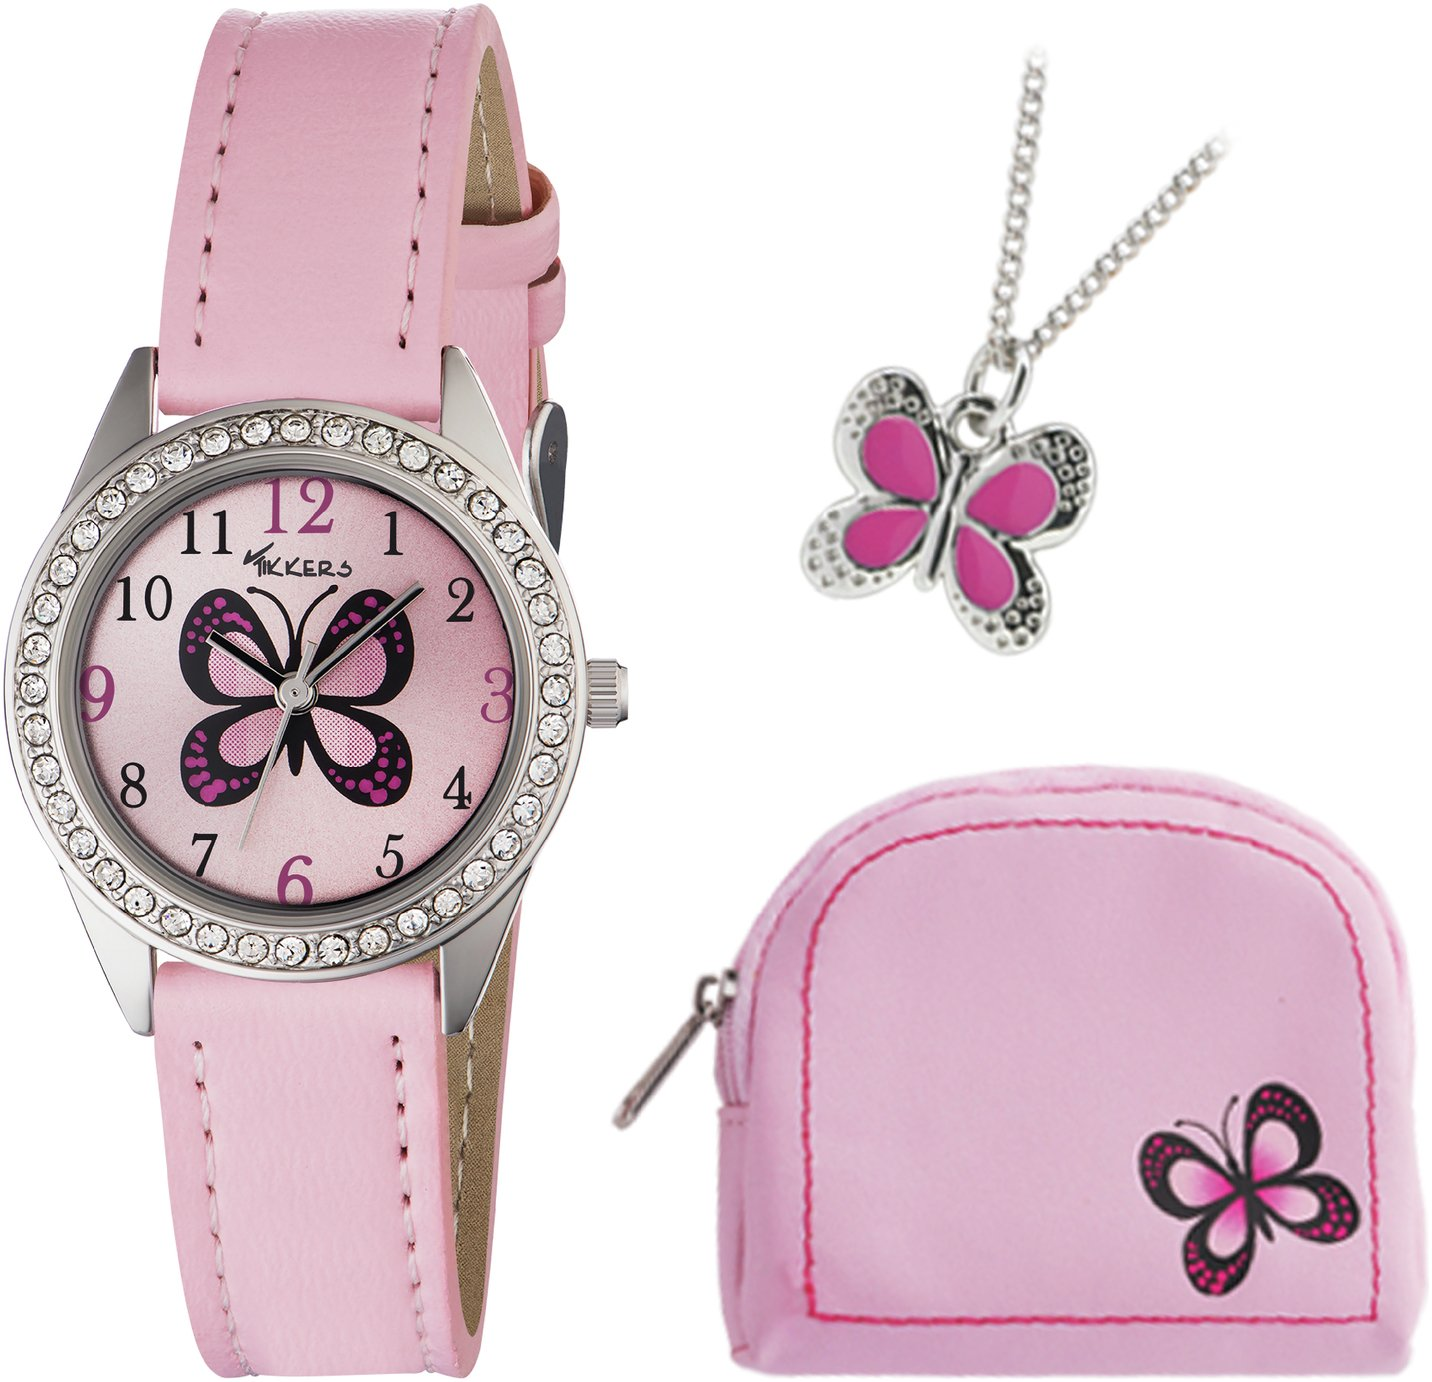 Tikkers - Girls Pink Butterfly - Watch Set from Tikkers